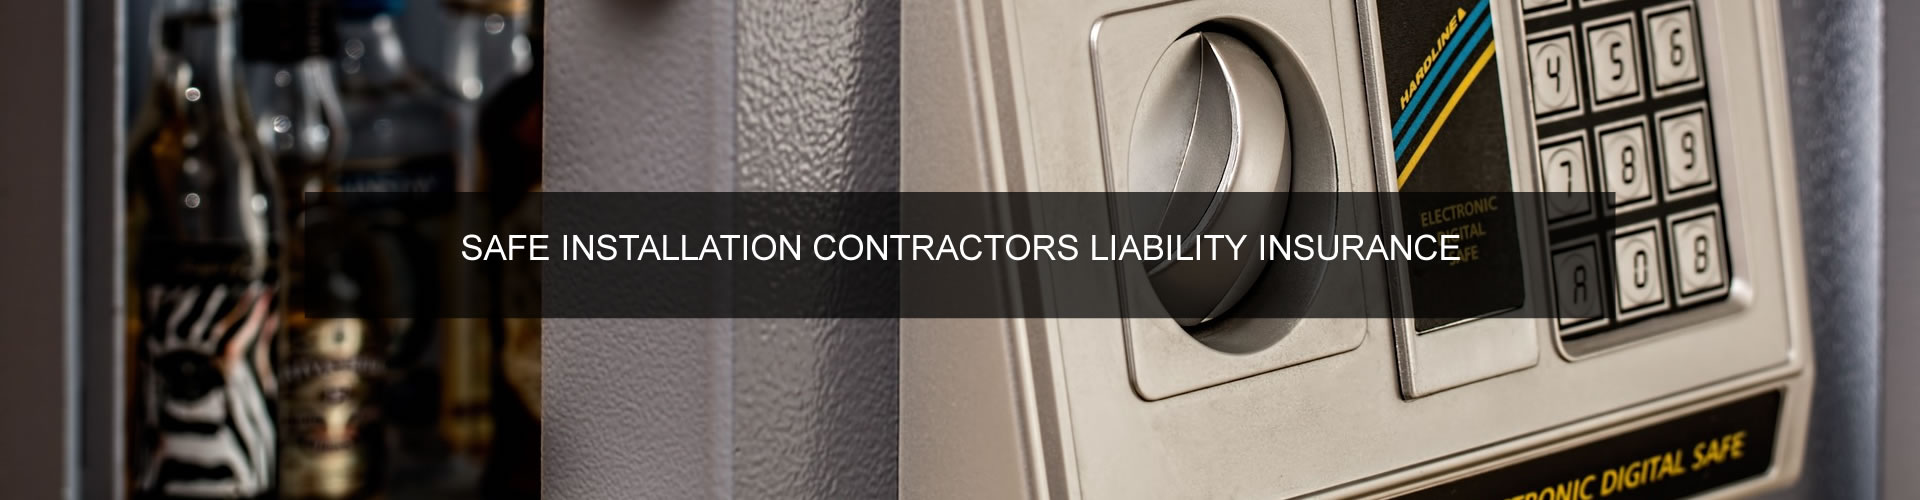 Safe Installation Contractors Liability Insurance